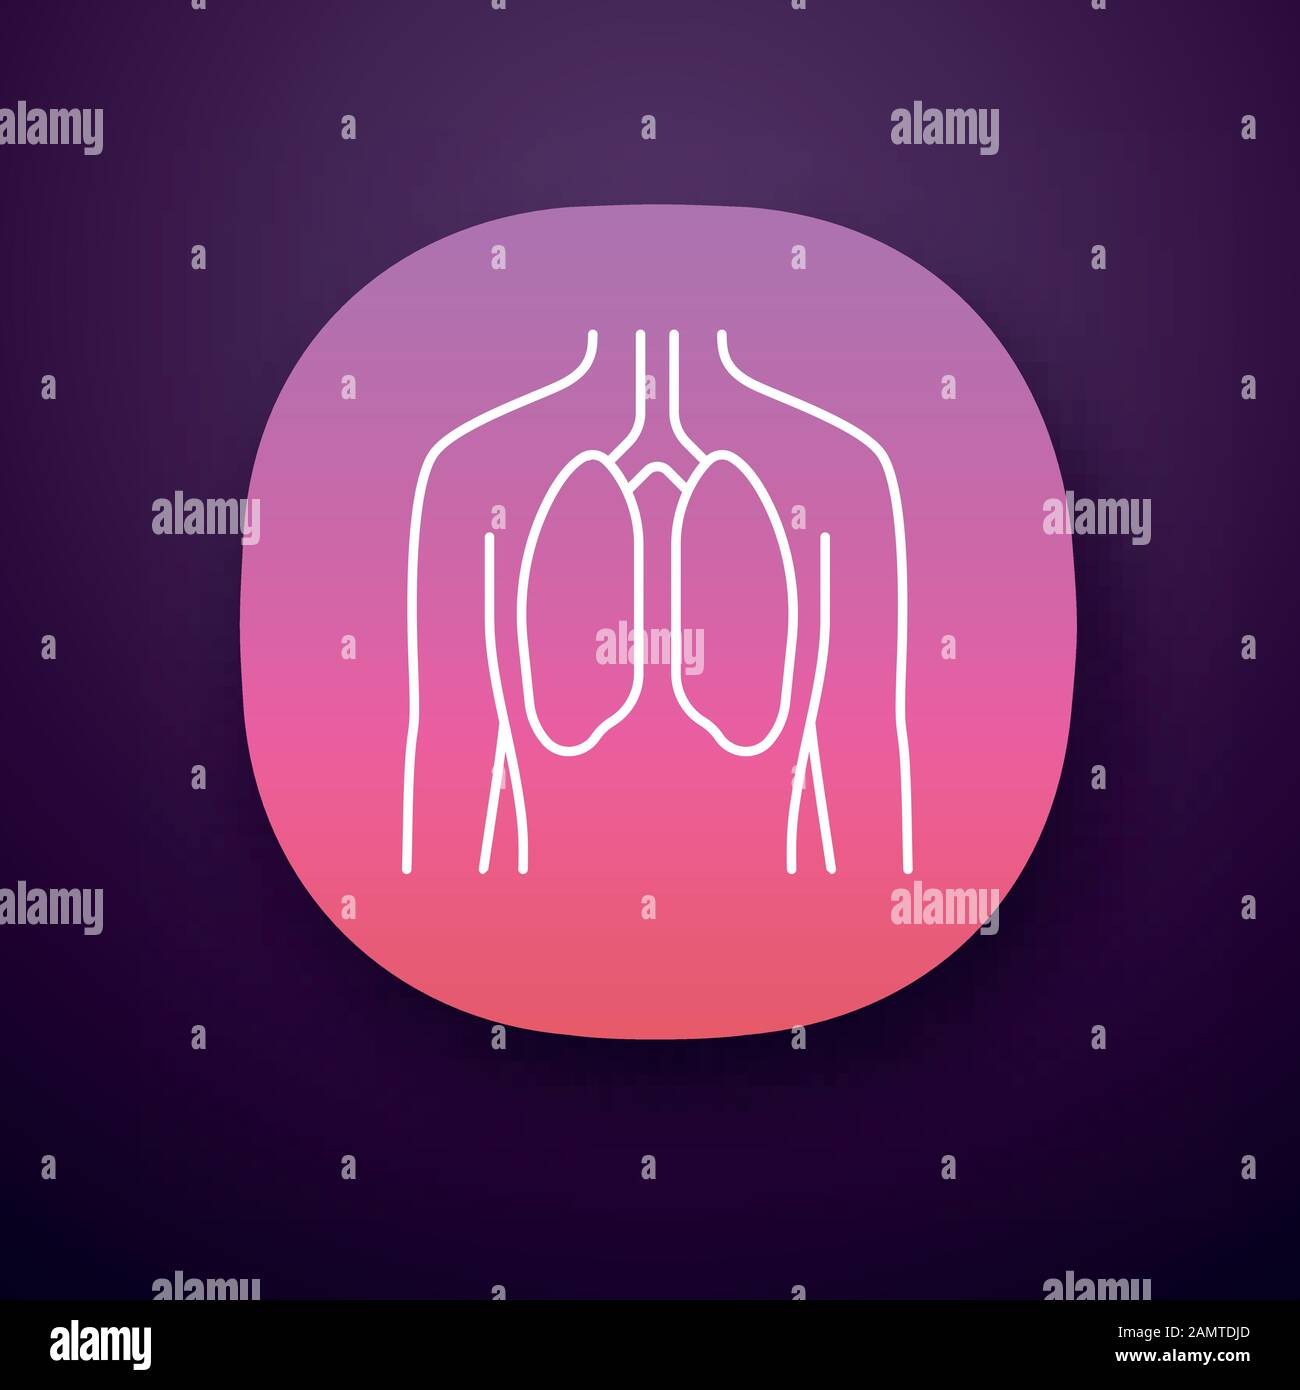 healthy lungs app icon human organ in good health functioning pulmonary system wholesome respiratory health ui ux user interface web or mobile ap stock vector image art alamy alamy